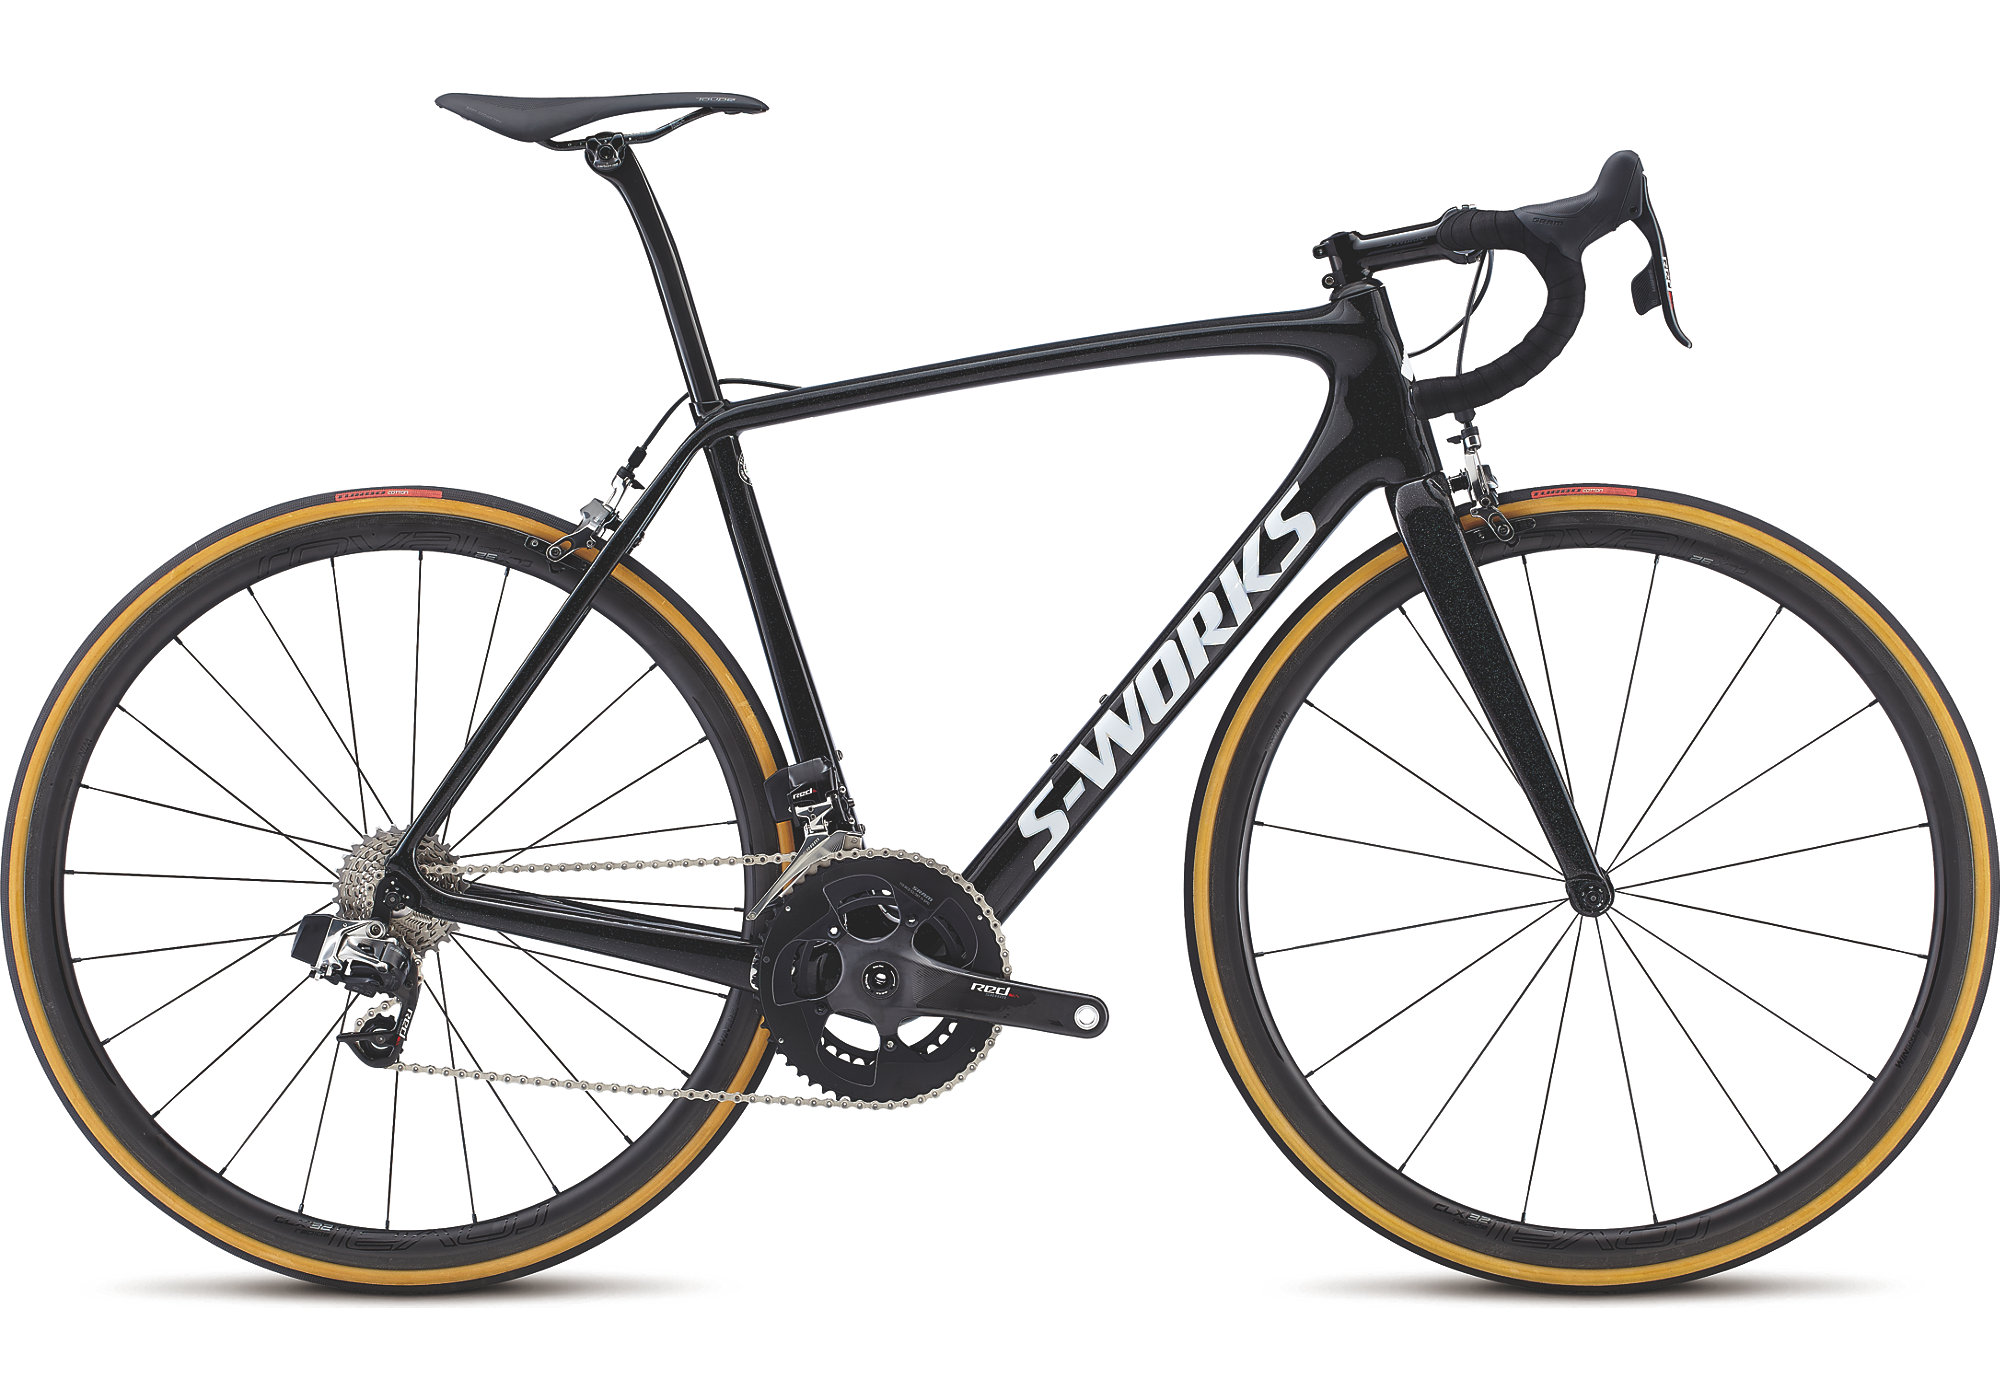 Specialized S-Works Tarmac Etap in Gloss Black/White/Clean £6,587 50